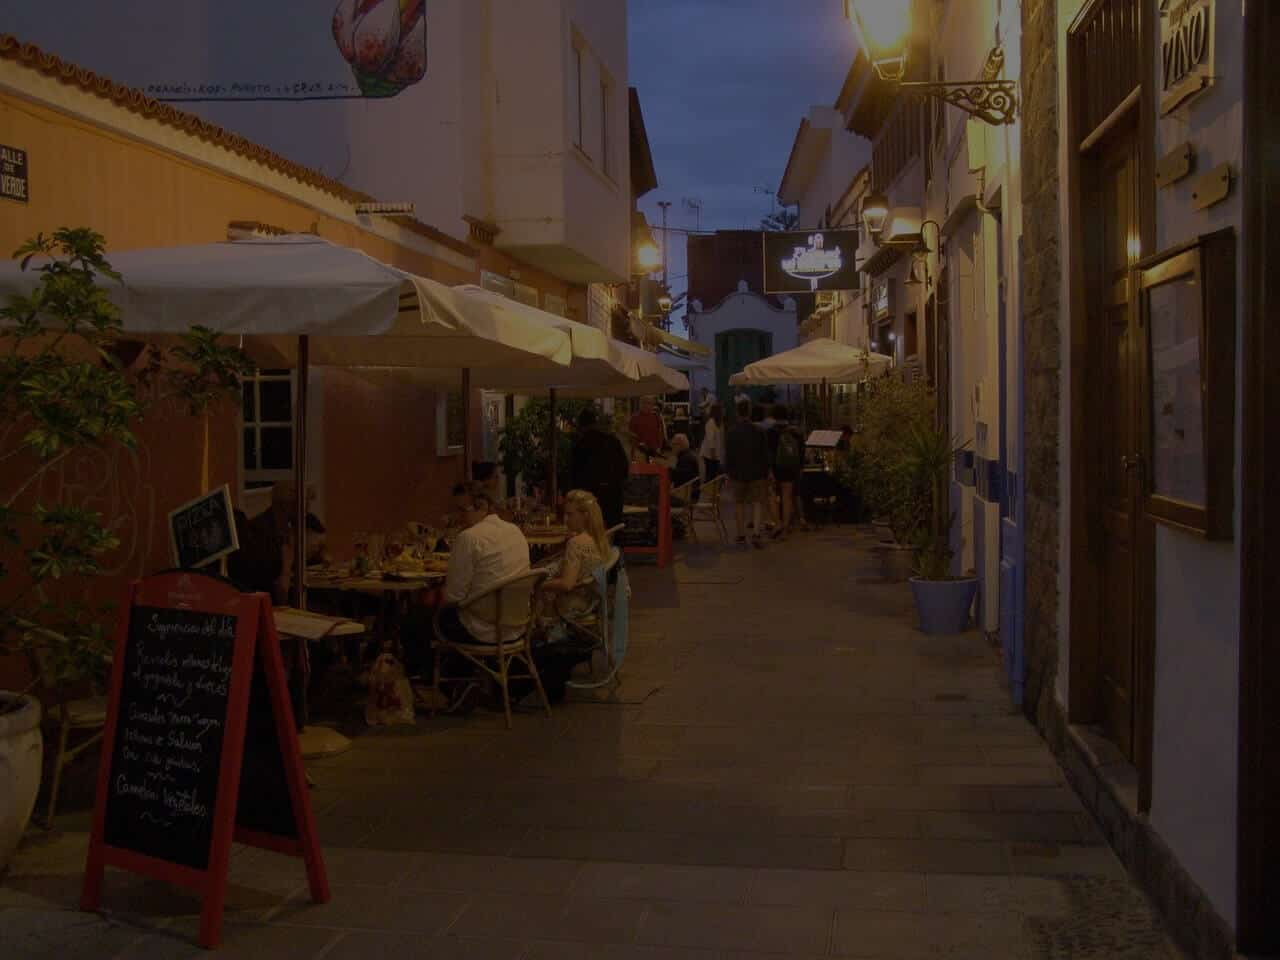 Restaurants - Puerto de la Cruz